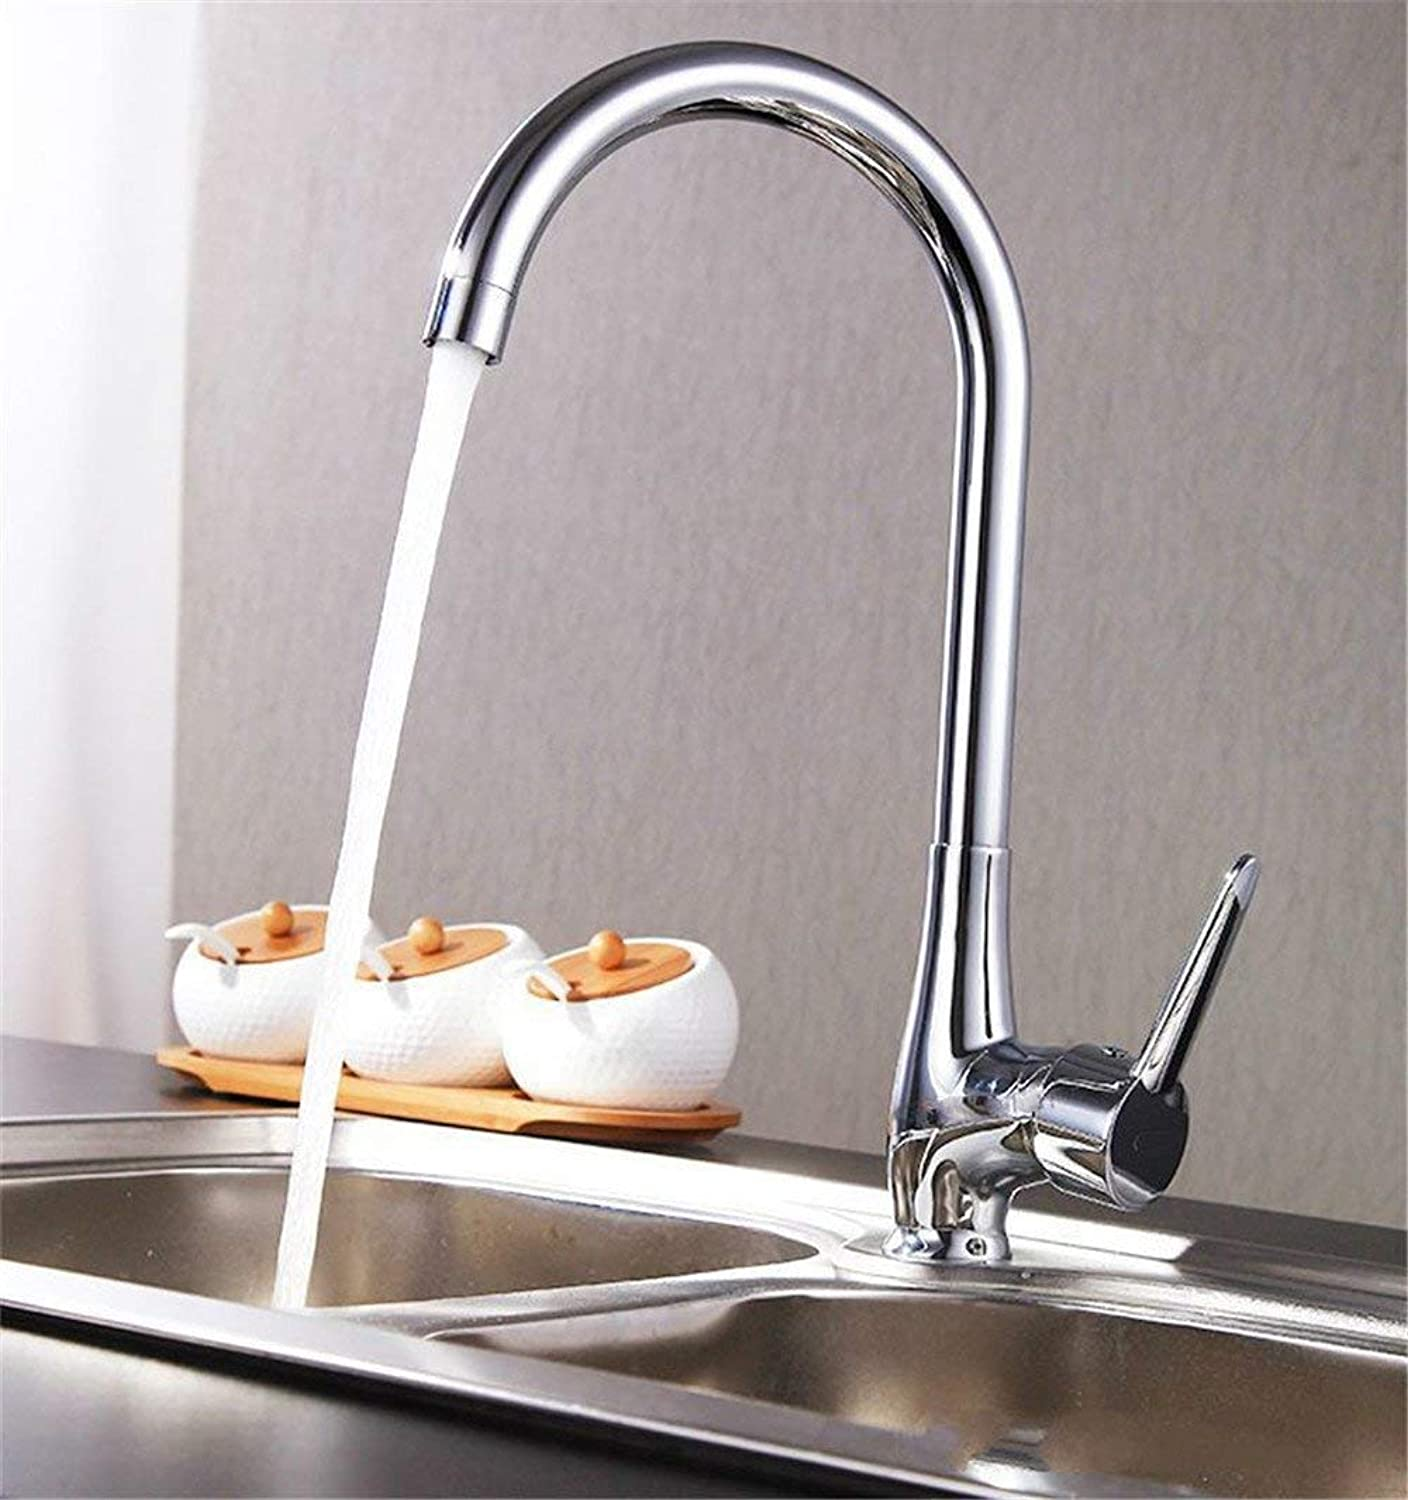 Ware copper chrome kitchen faucet environmental single handle hot and cold faucet sink faucet (color   -, Size   -)